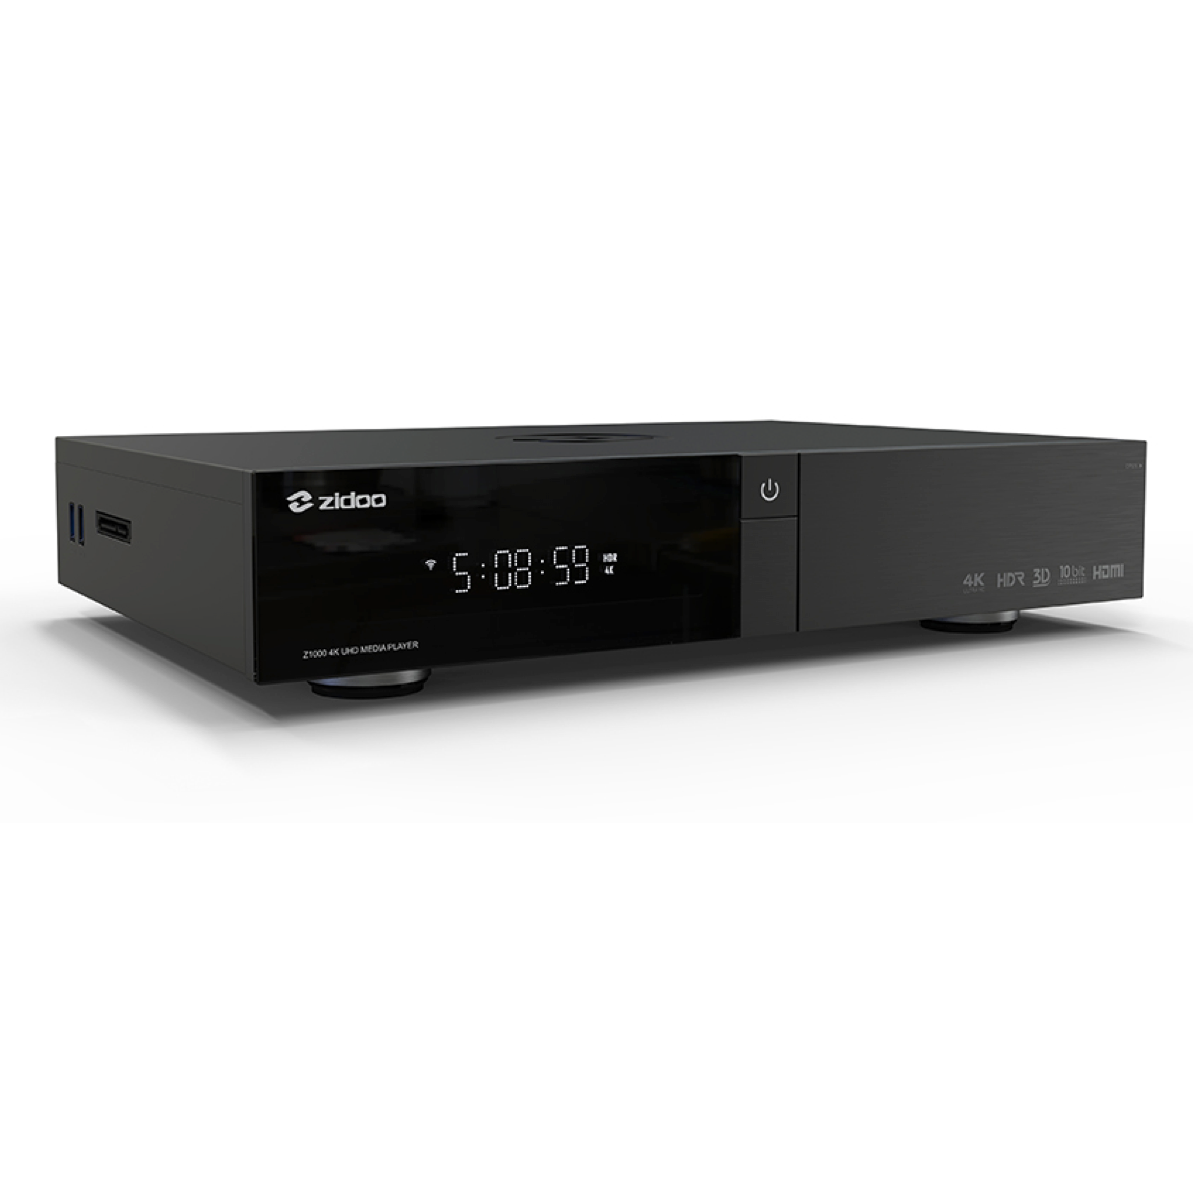 Zidoo Z1000 - 4K Streaming Media Player - AVStore.in